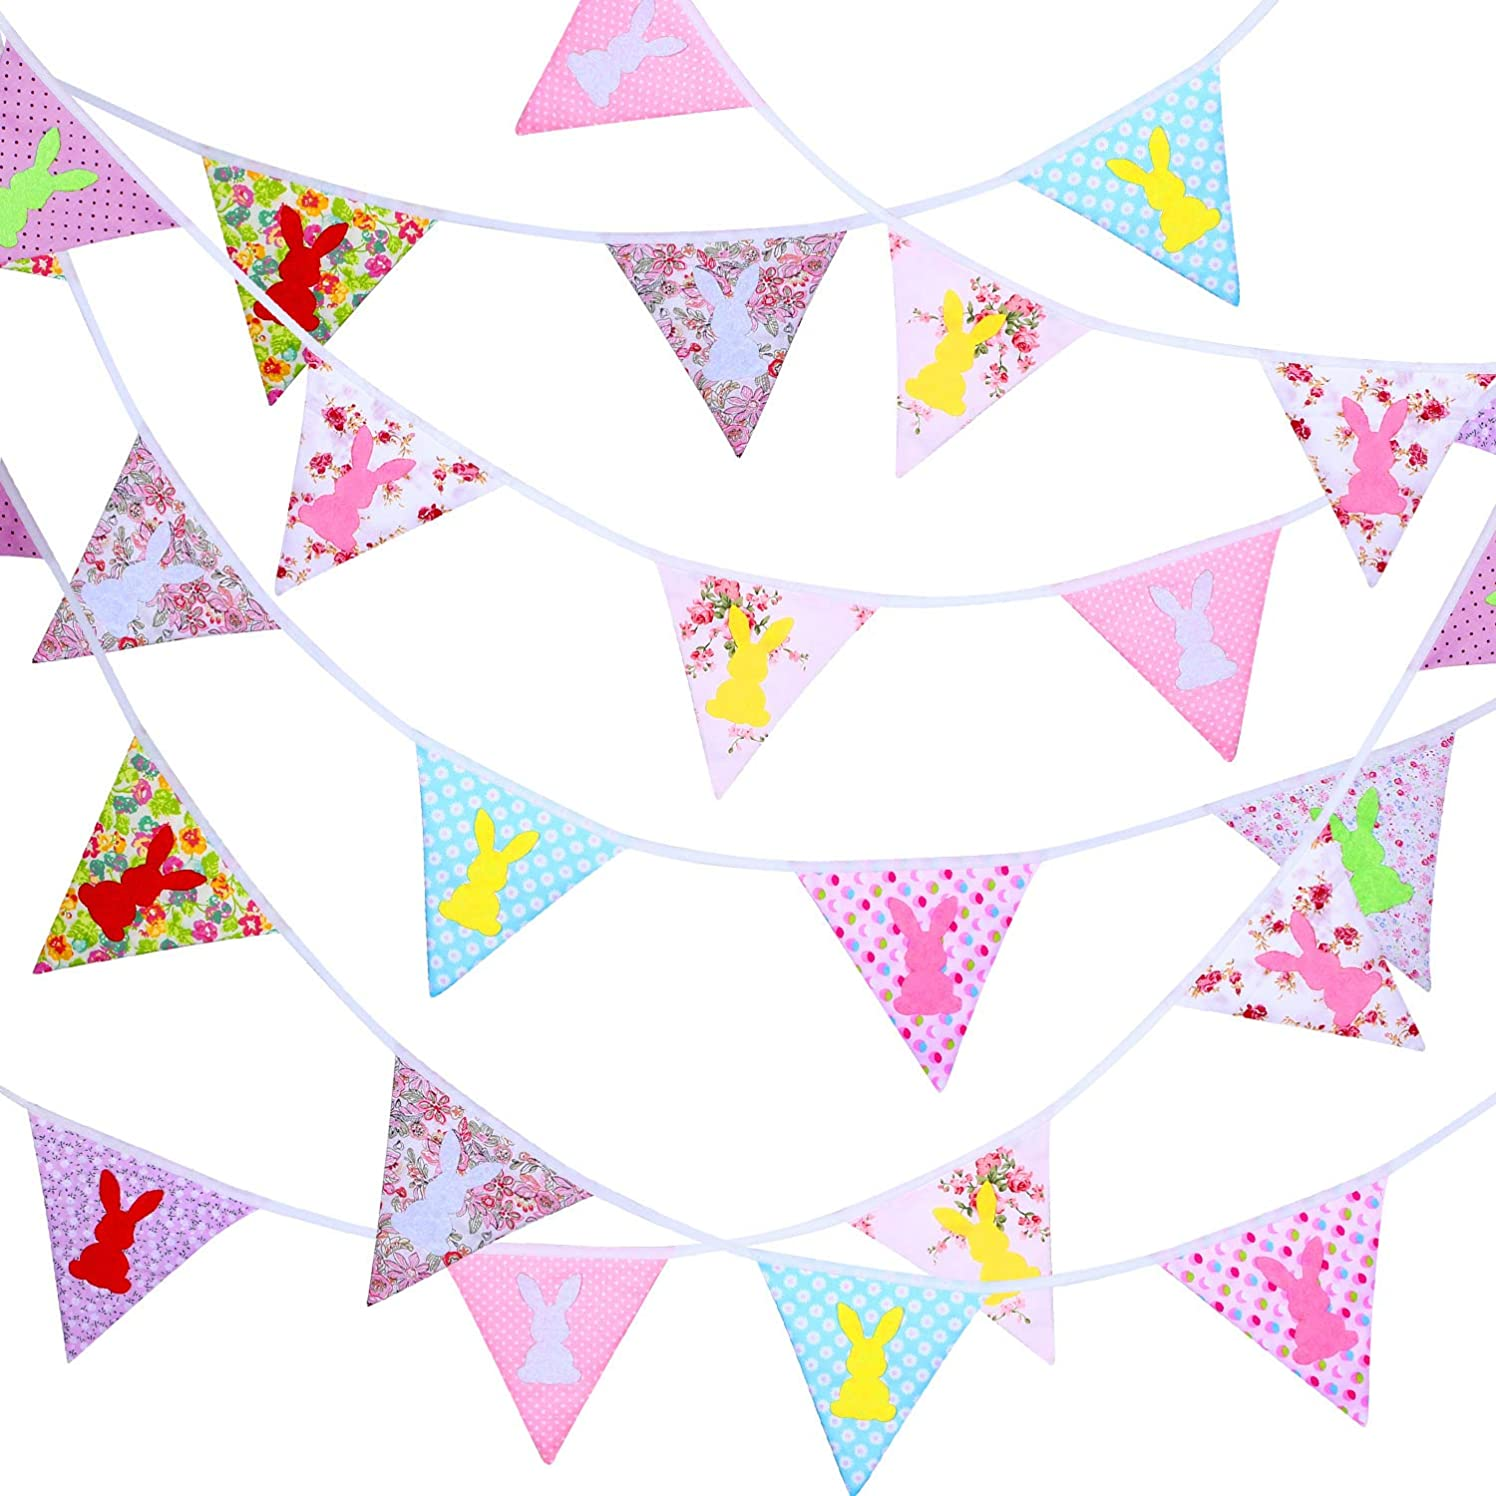 33 Feet Fabric Banner Bunting 30 Double-sided Triangle Pennant Flags in 10 Different Style Patterns for Holiday Winter Birthday Party Photo Prop (Easter) (Easter)